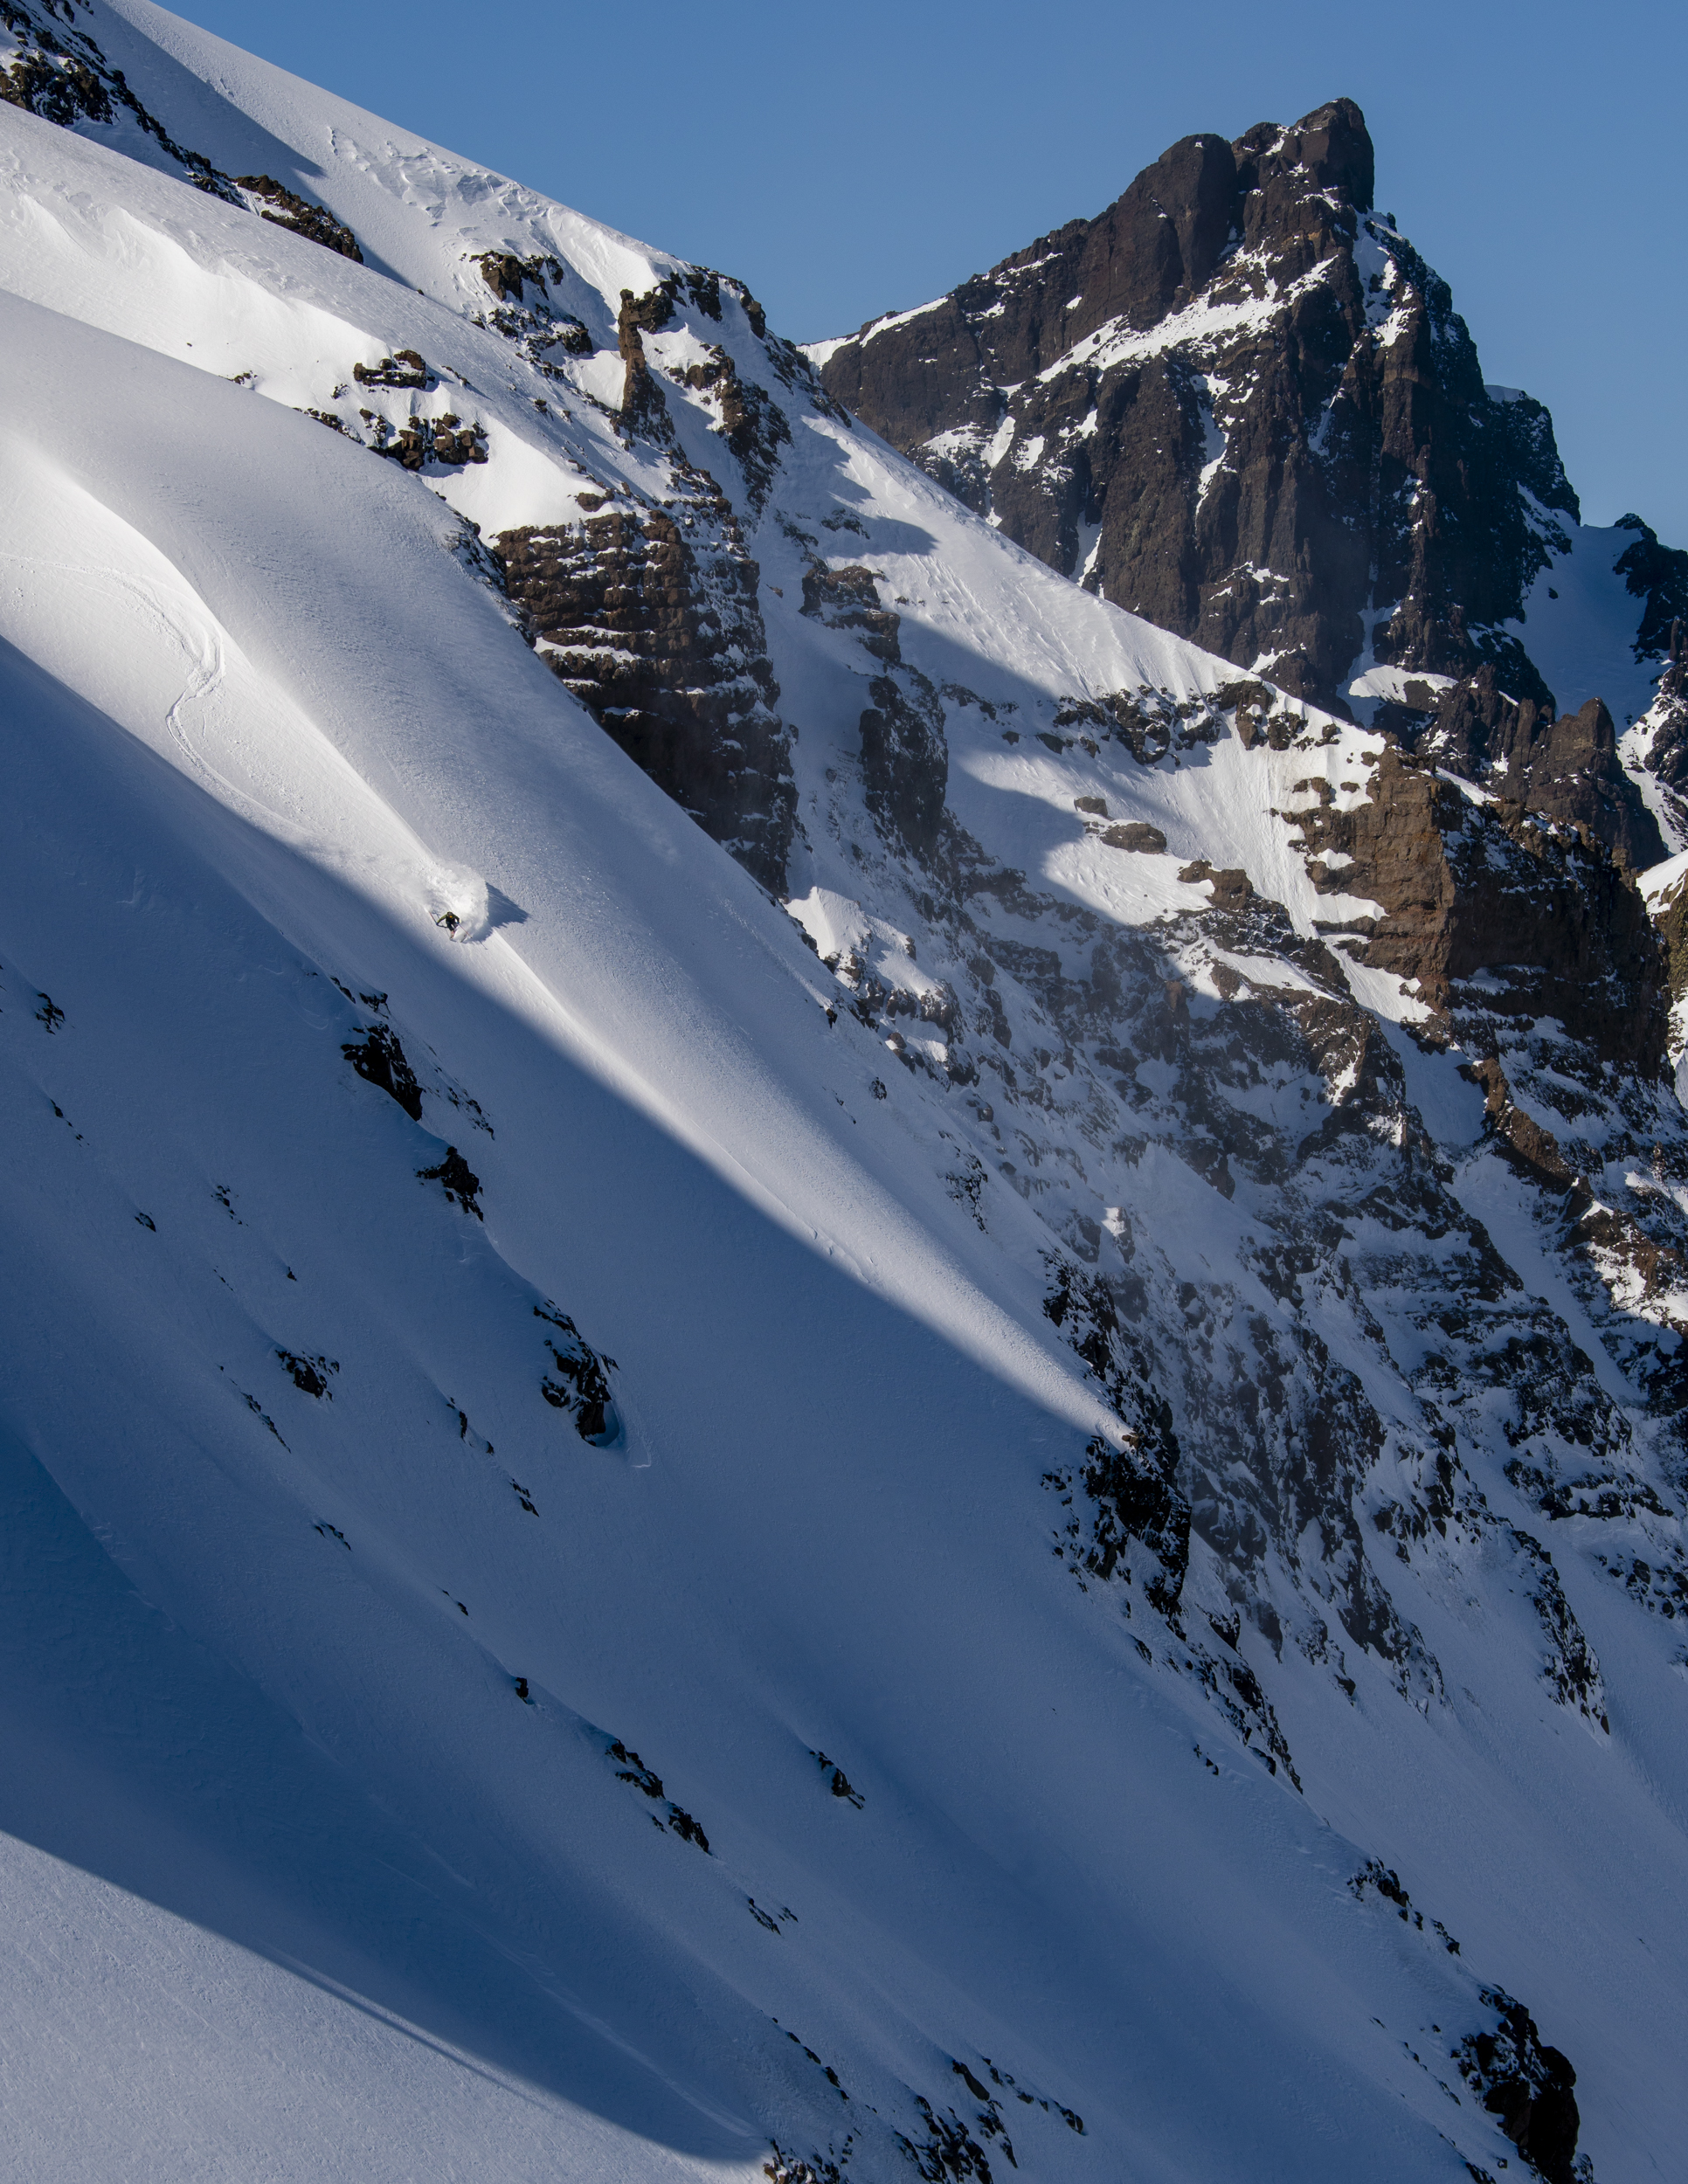 After a technical approach to the line Mauri was rewarded with the best snow of the trip.